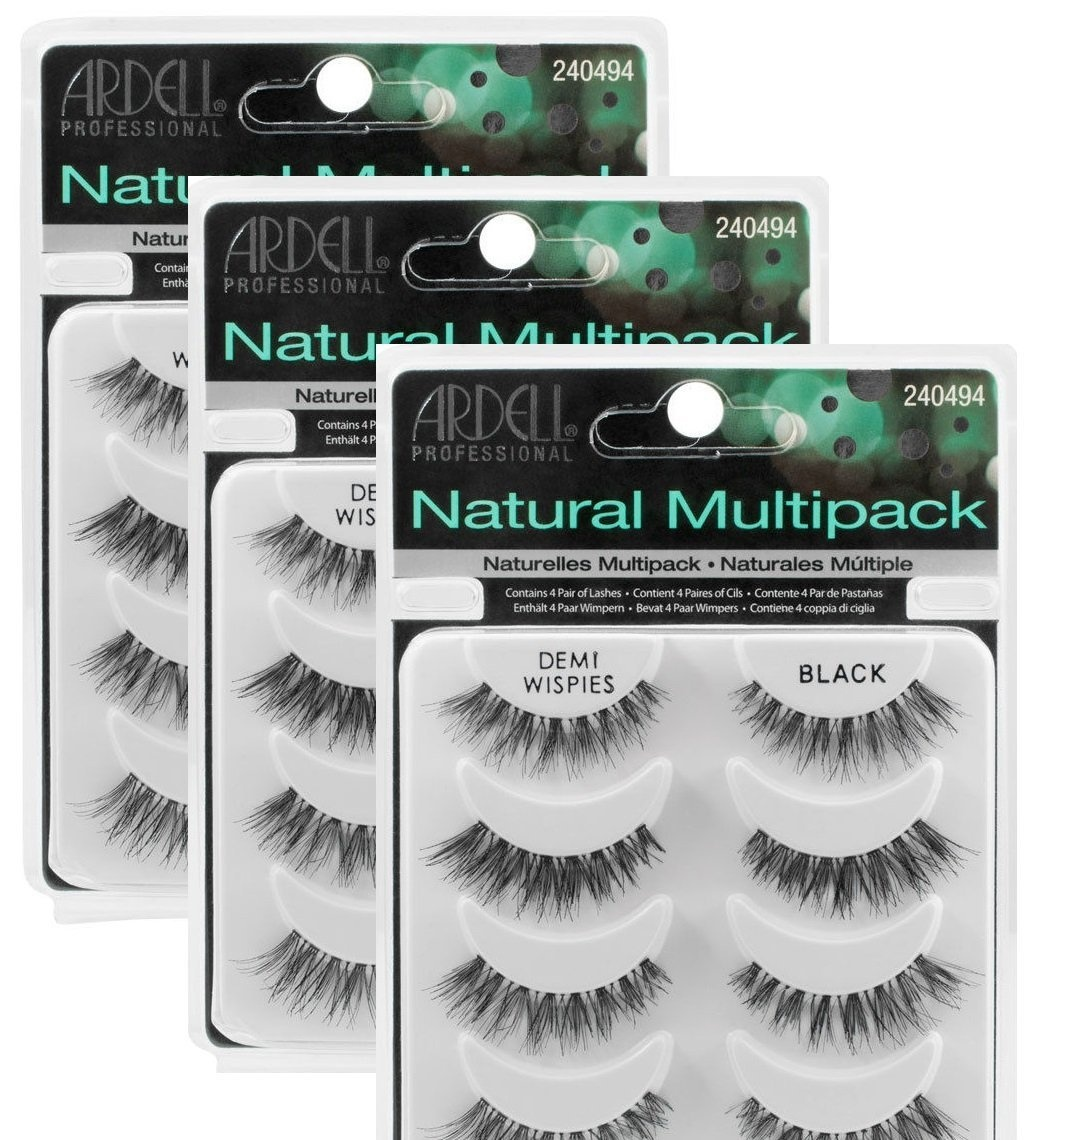 5e7338752a7 3 Pack) ARDELL Professional Natural Multipack - Demi Wispies Black ...